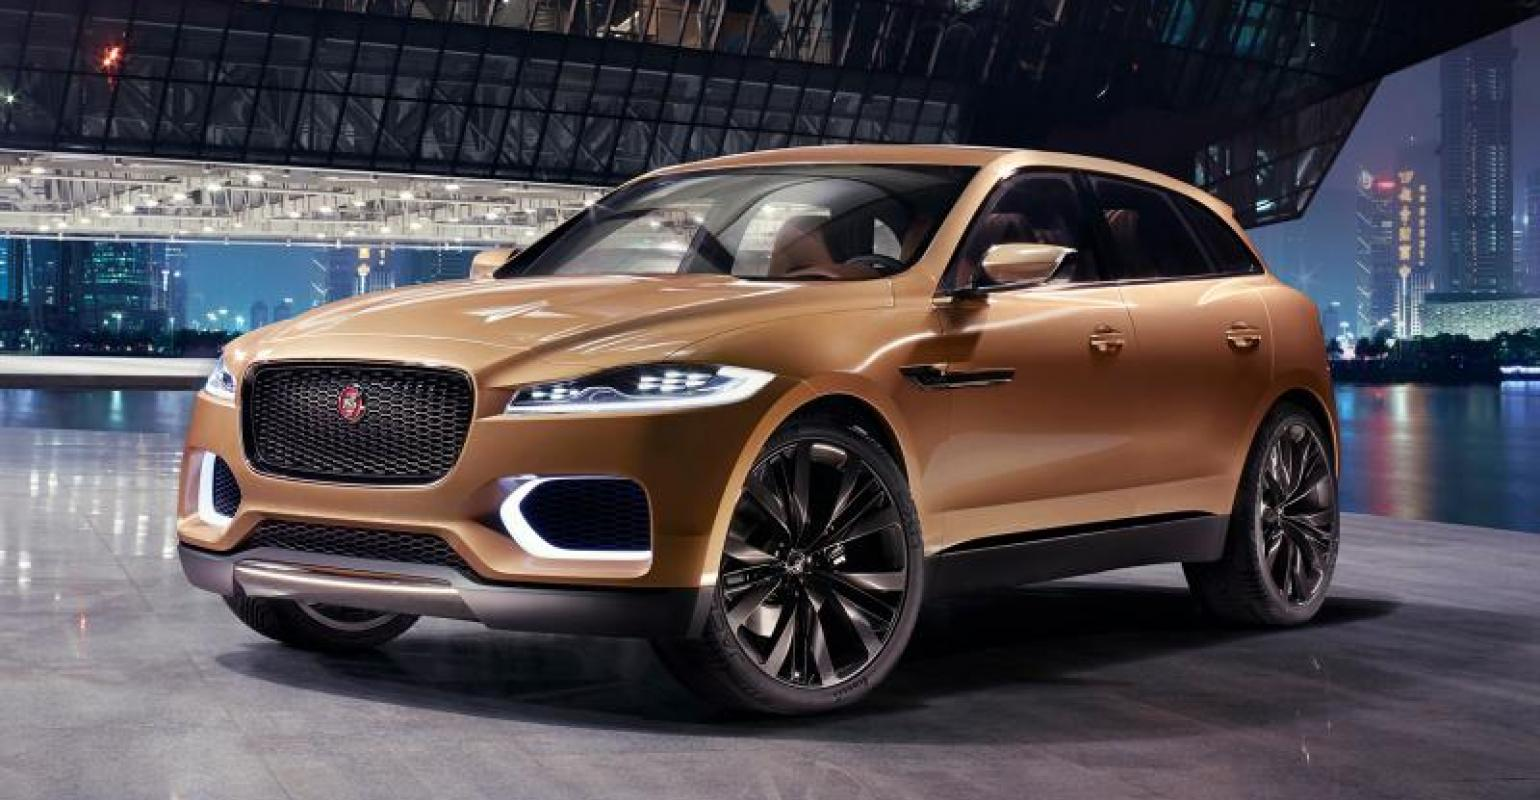 Jlr Luxury Automaker Posts Seventh Straight Year Of Growth In 2016